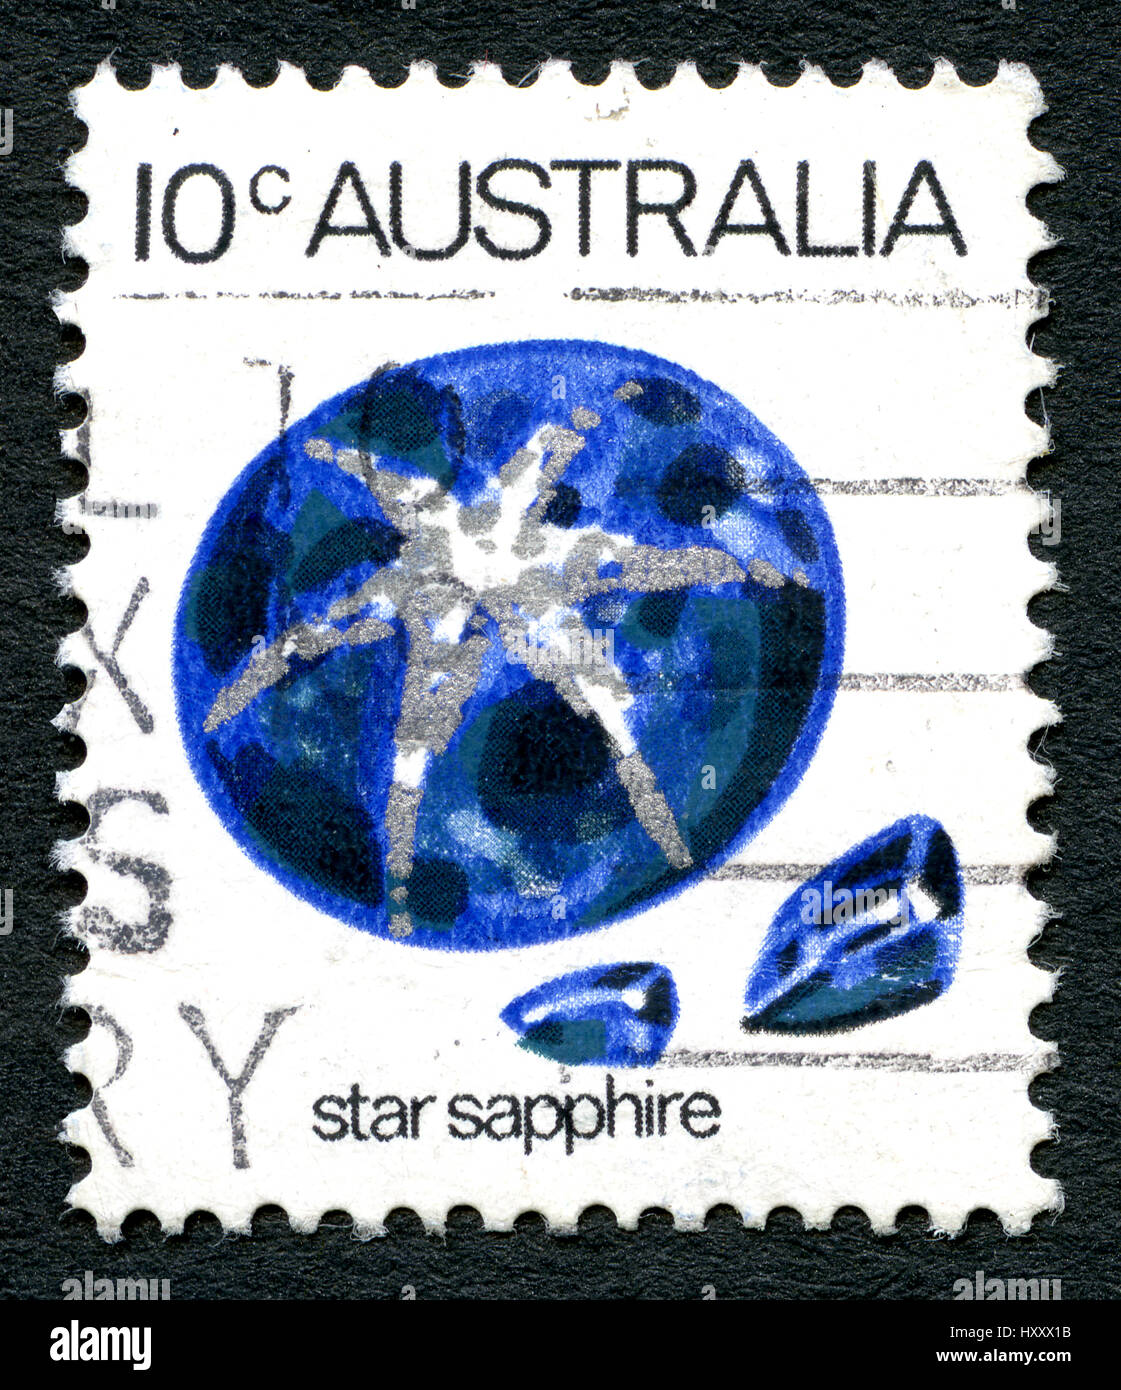 AUSTRALIA - CIRCA 1973: A used postage stamp from Australia, depicting an illustration of a Star Sapphire gemstone, - Stock Image